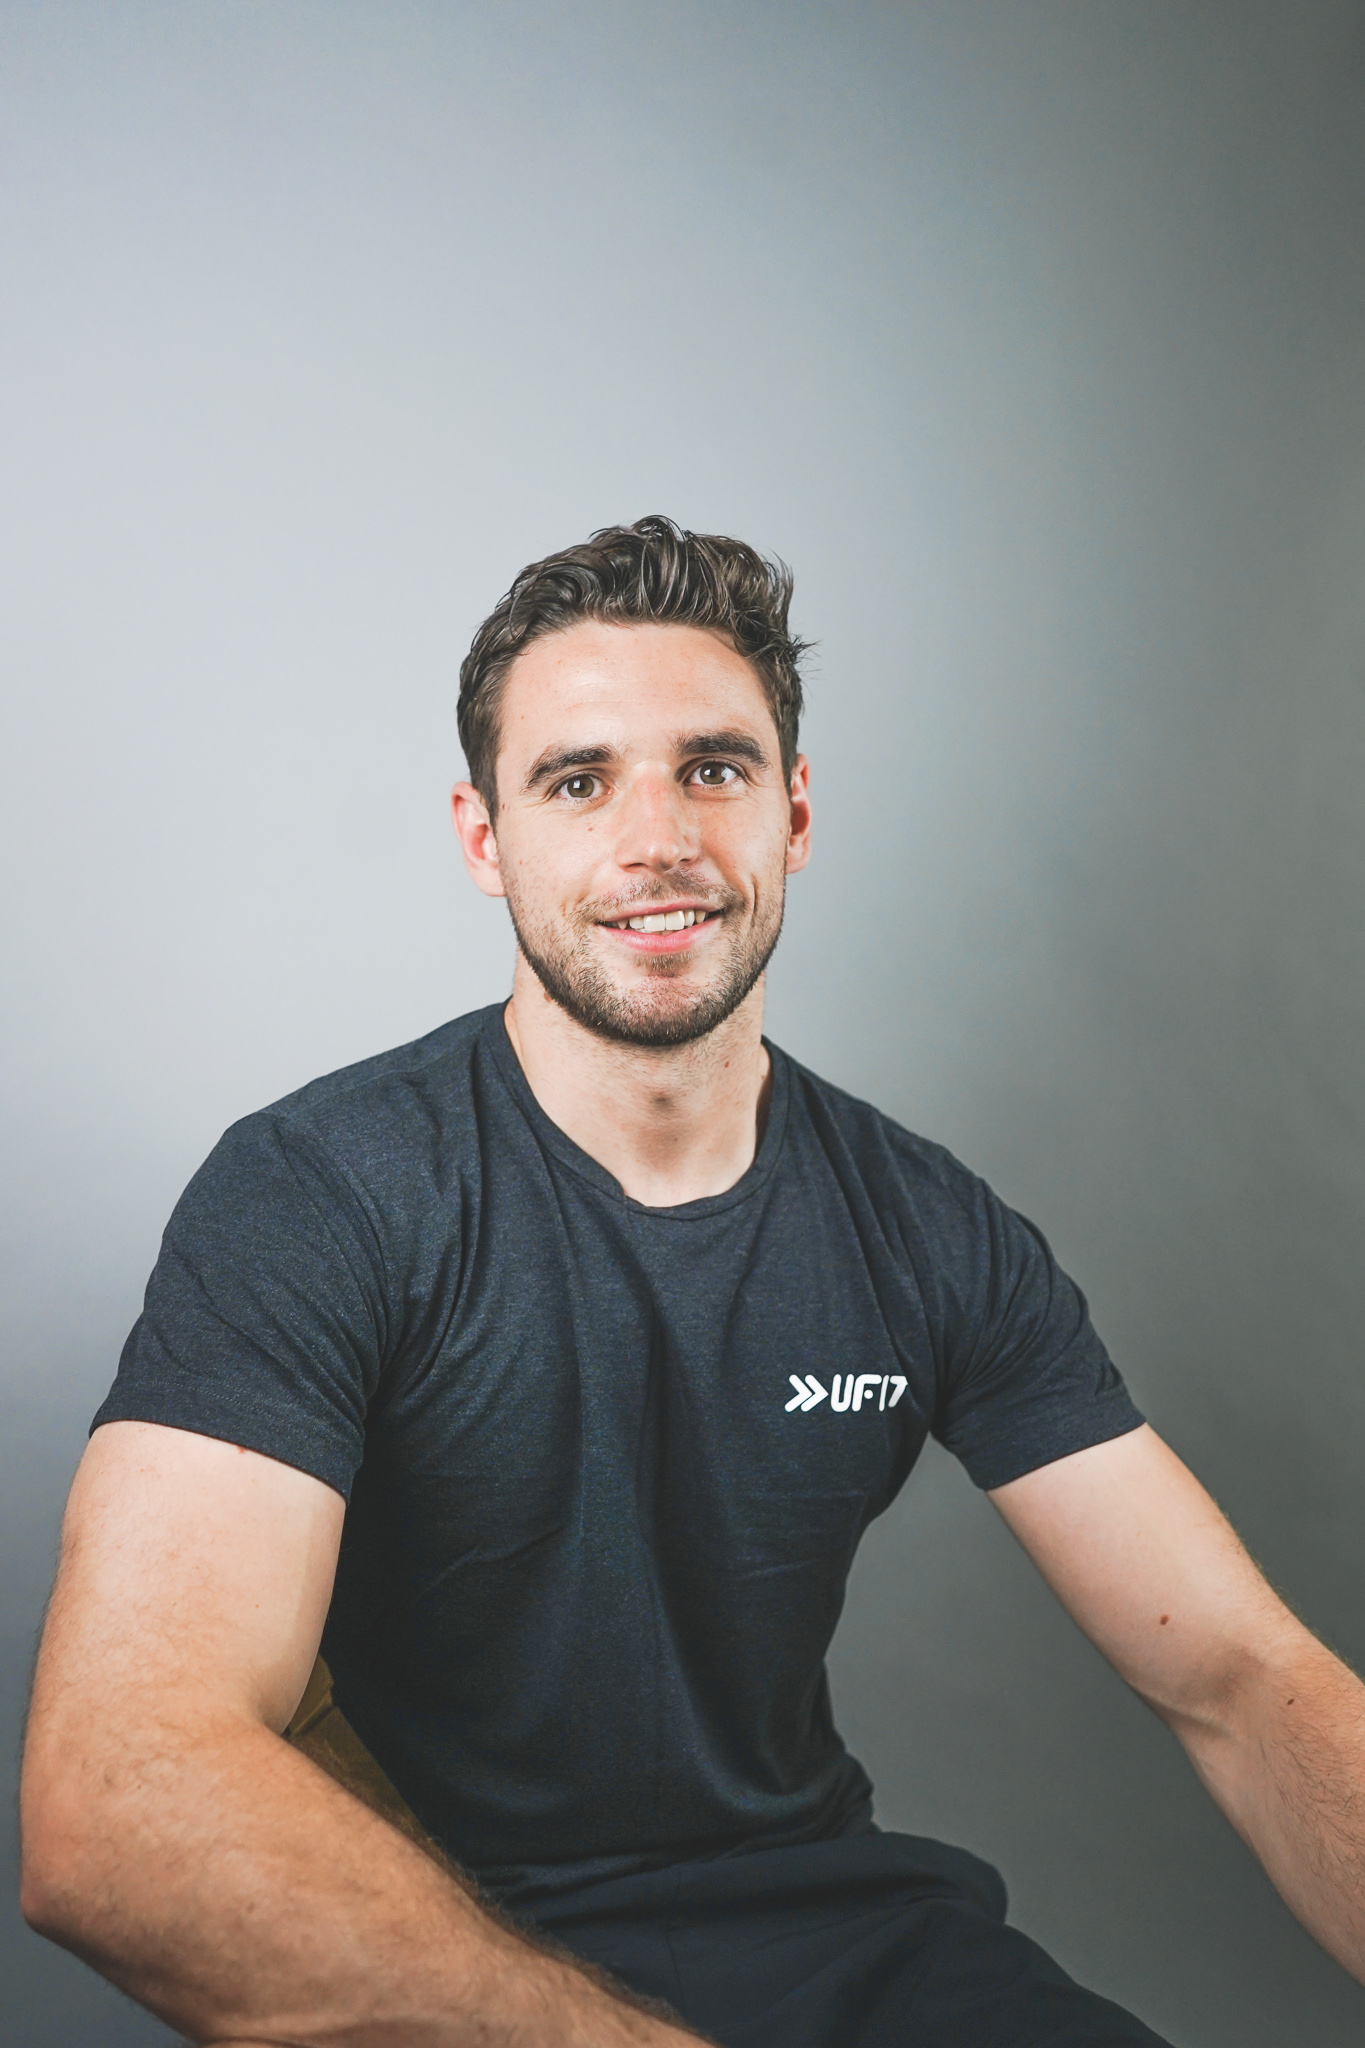 Ruairidh Winters UFIT Personal Trainer